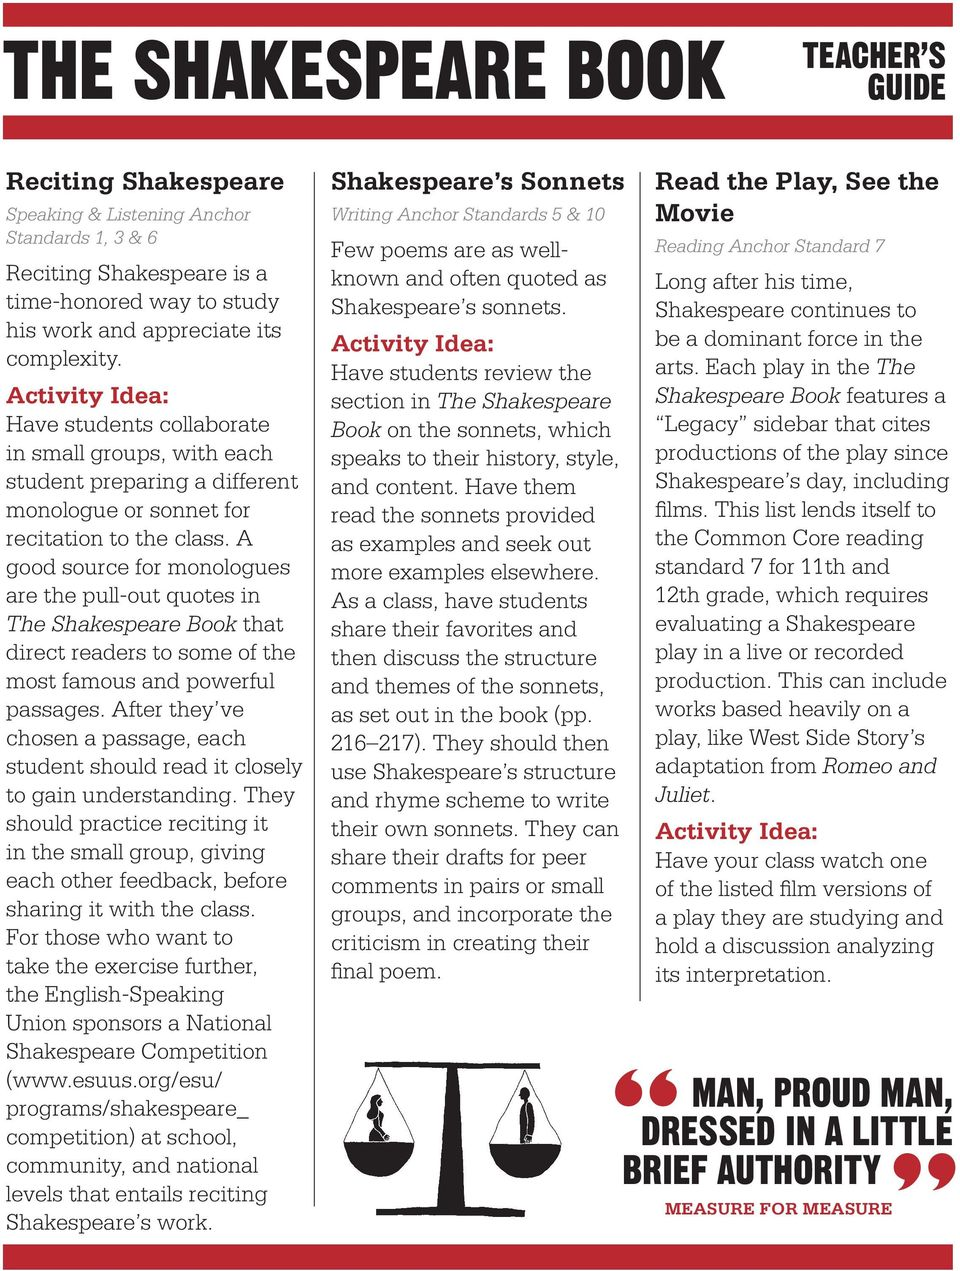 A good source for monologues are the pull-out quotes in The Shakespeare Book that direct readers to some of the most famous and powerful passages.